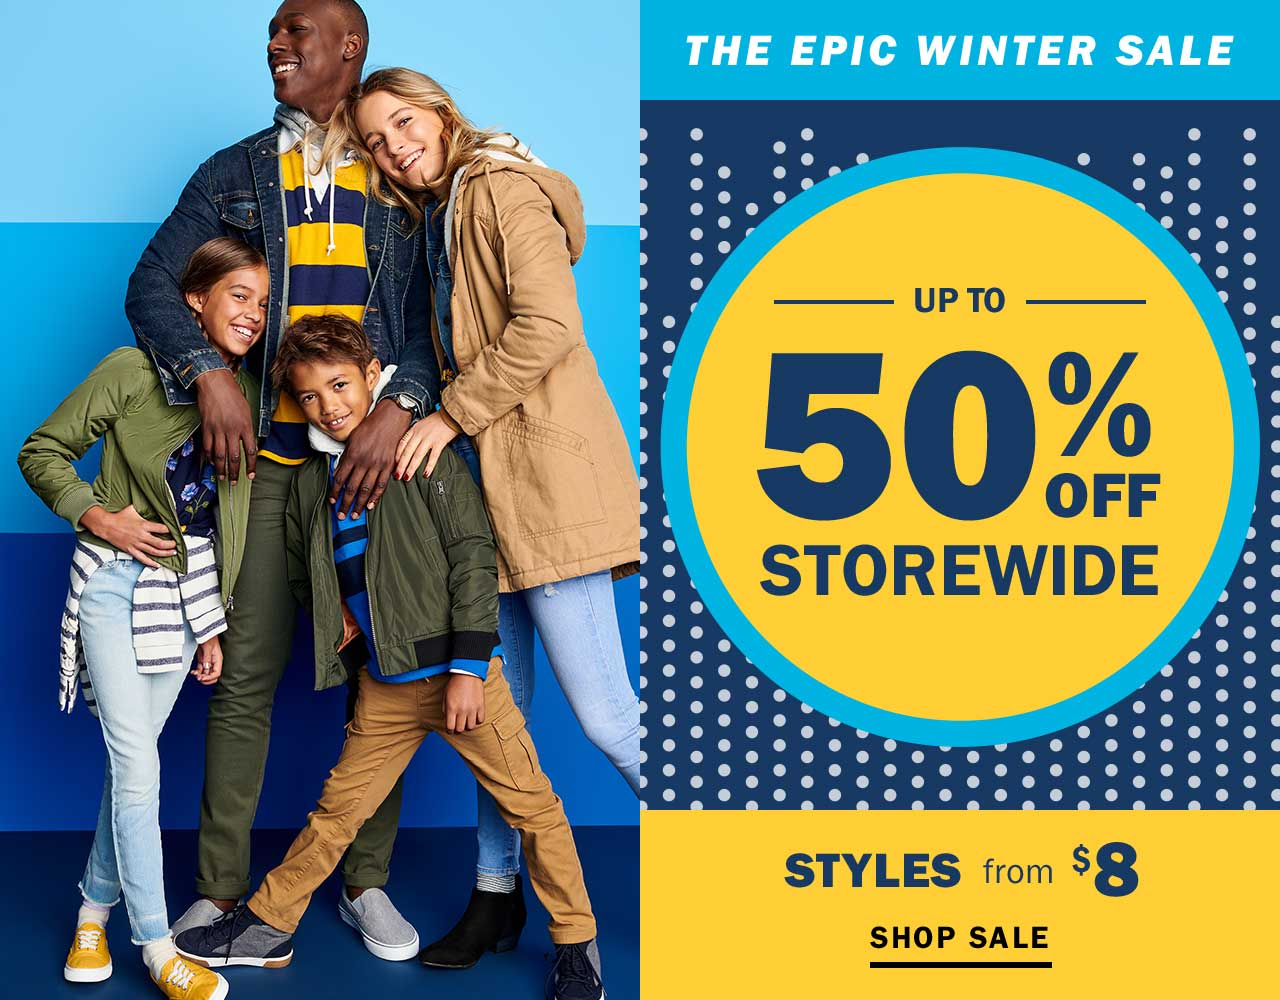 THE EPIC WINTER SALE | UP TO 50% OFF STOREWIDE